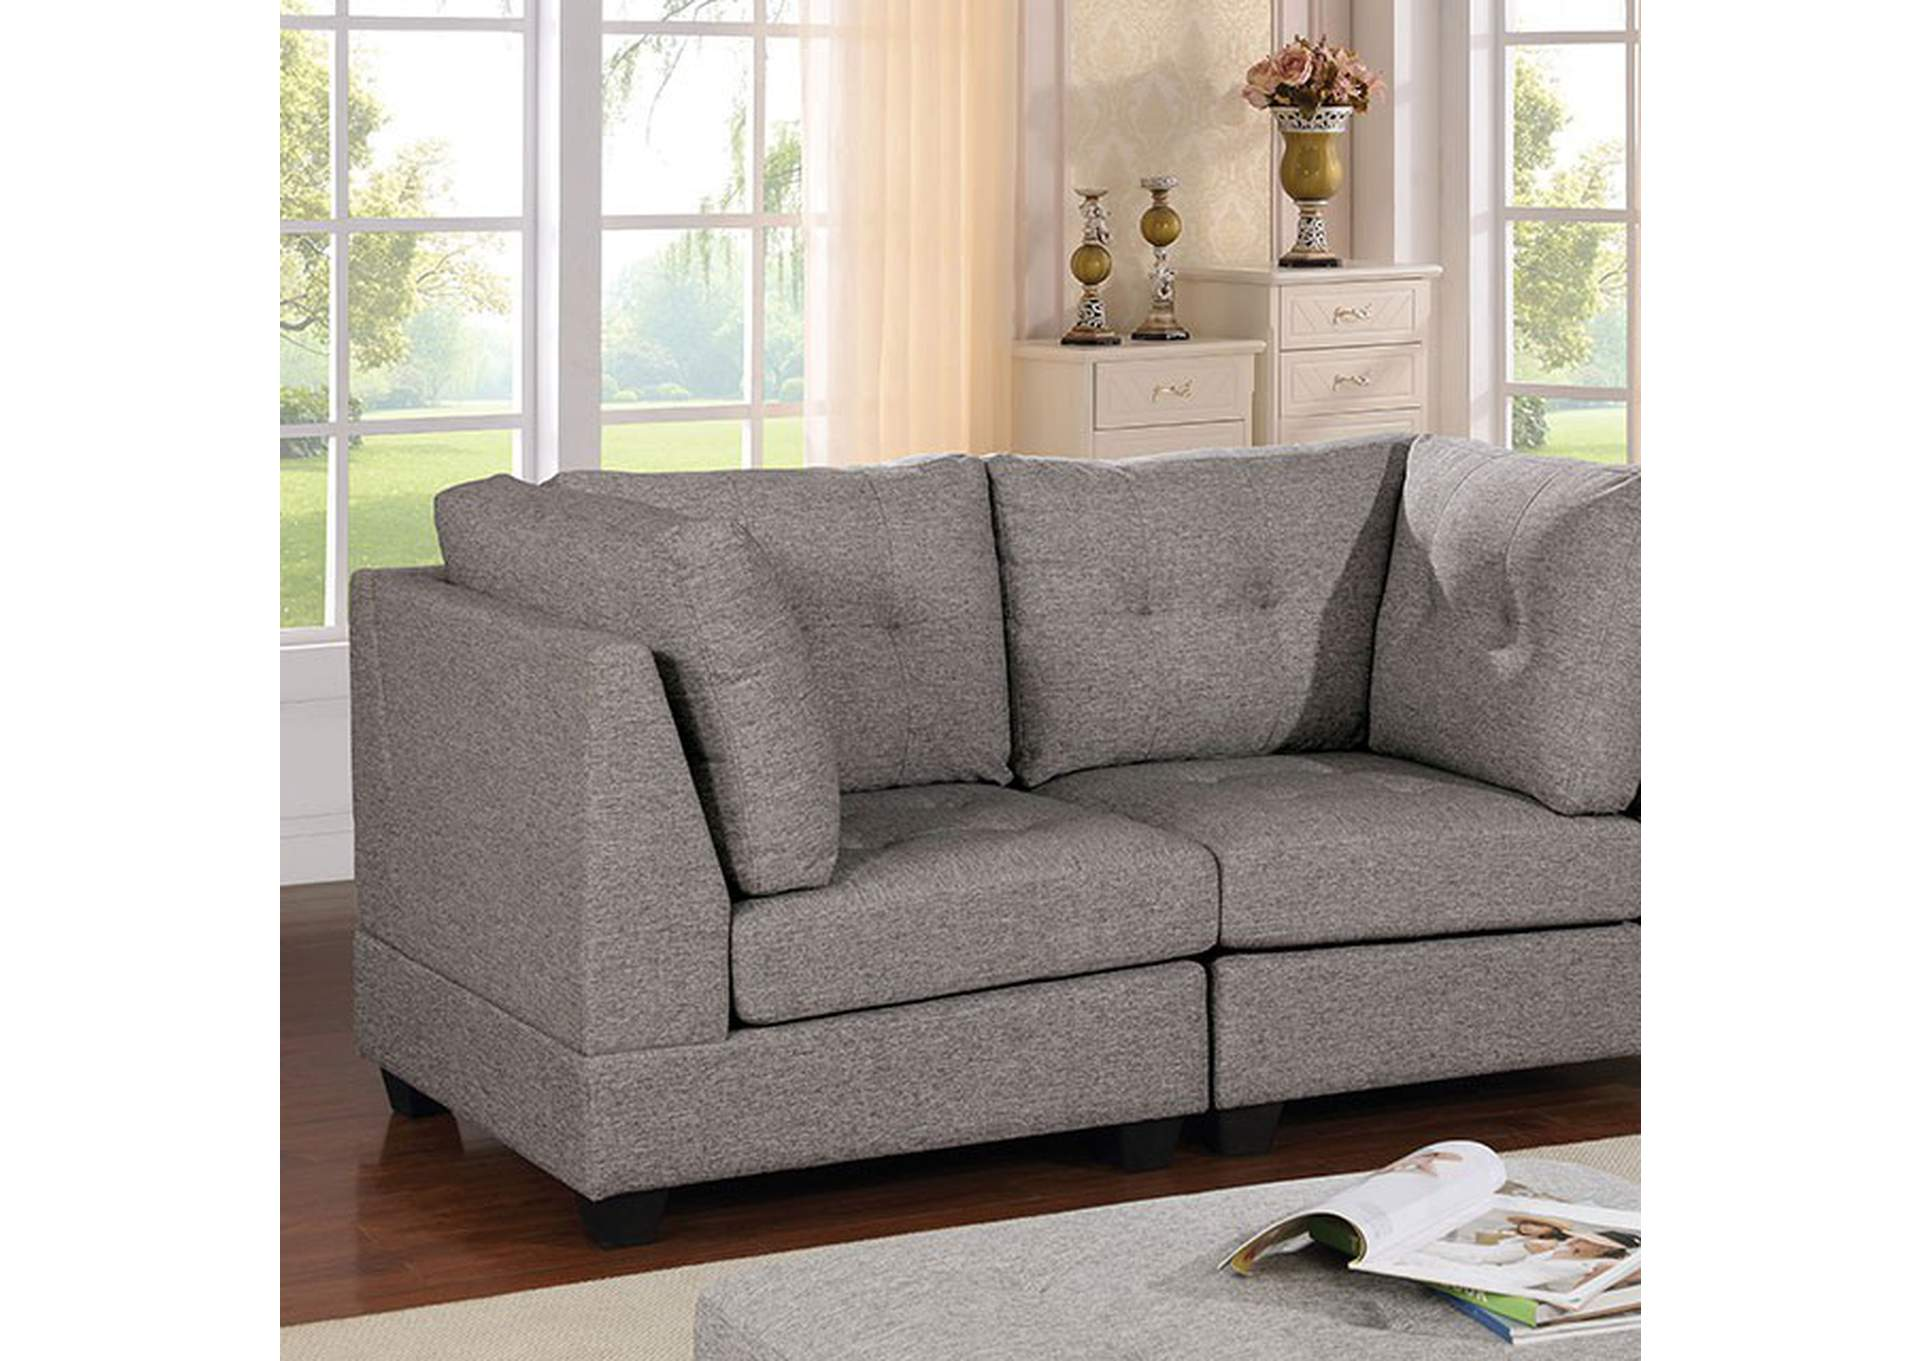 Pencoed Gray Loveseat,Furniture of America